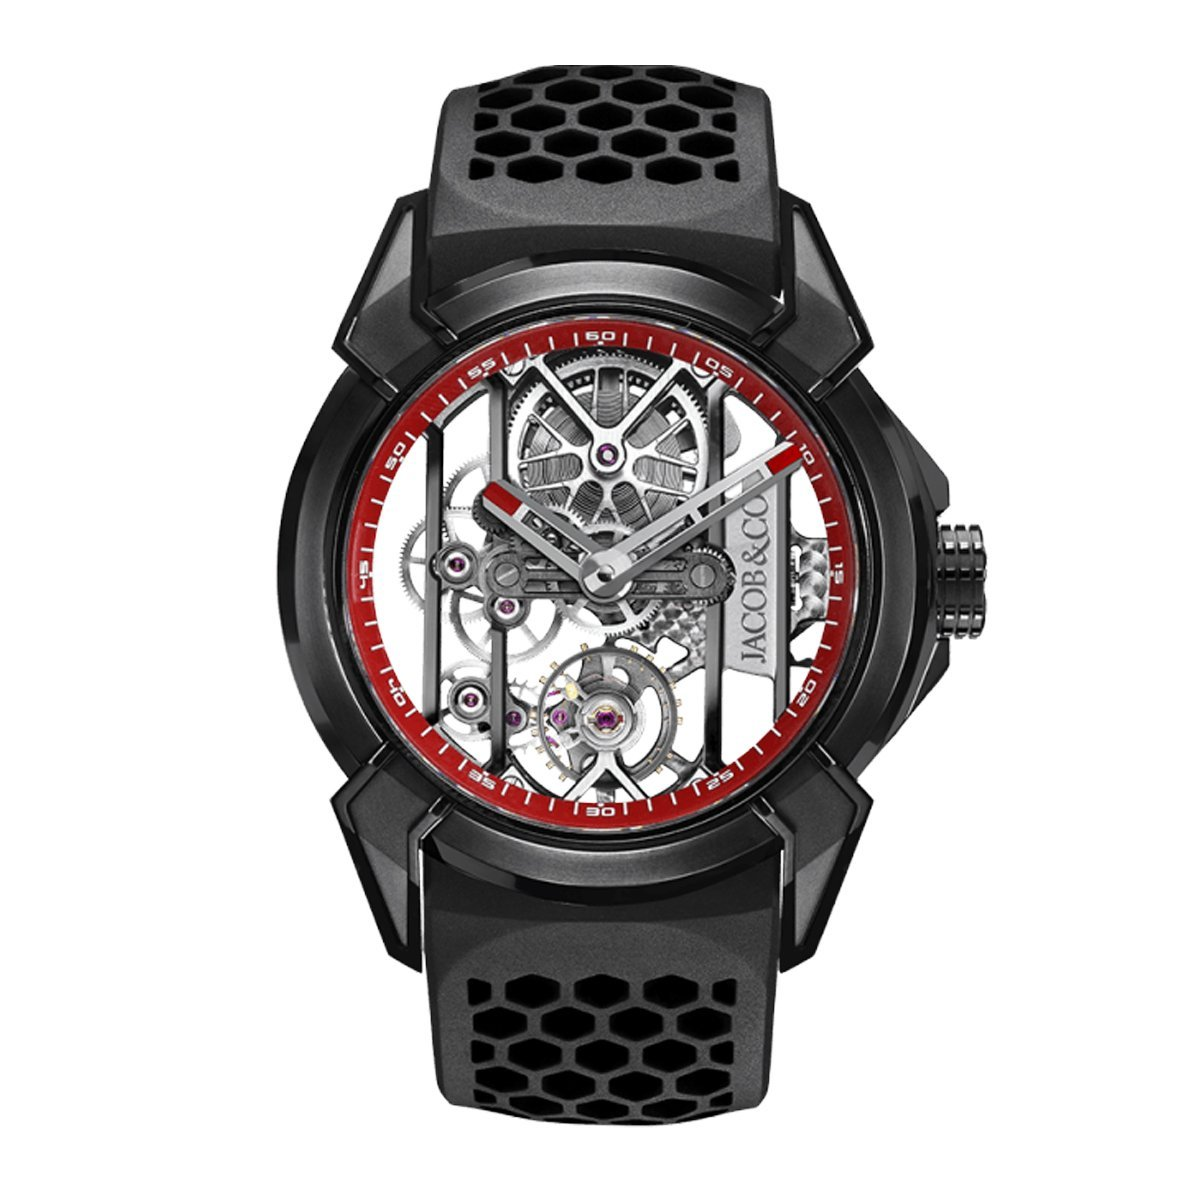 Jacob & Co. Epic X Skeleton Black DLC Titanium Red - Watches & Crystals